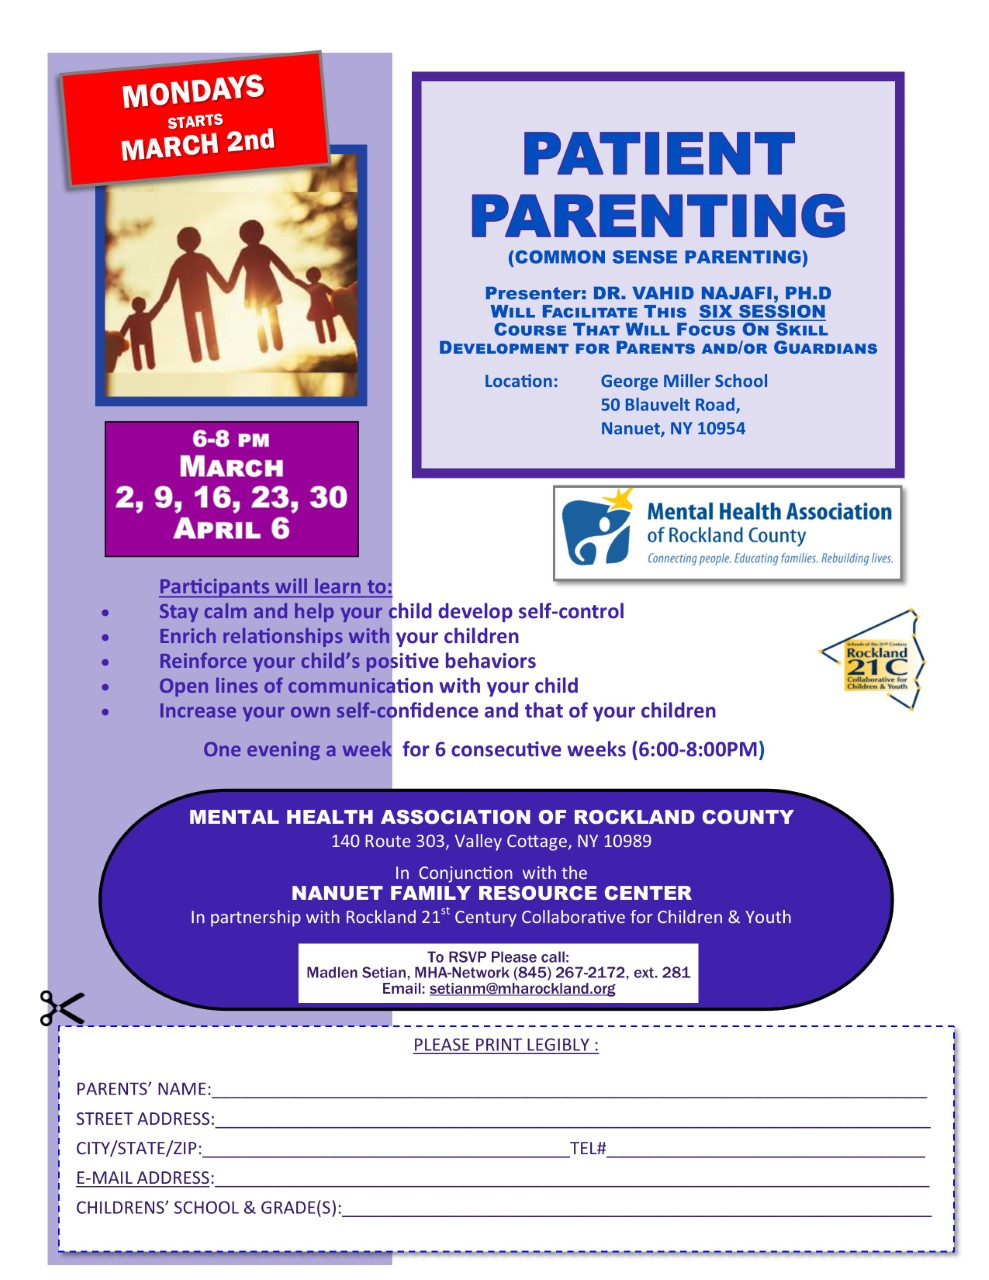 Patient Parenting Starting March 2nd